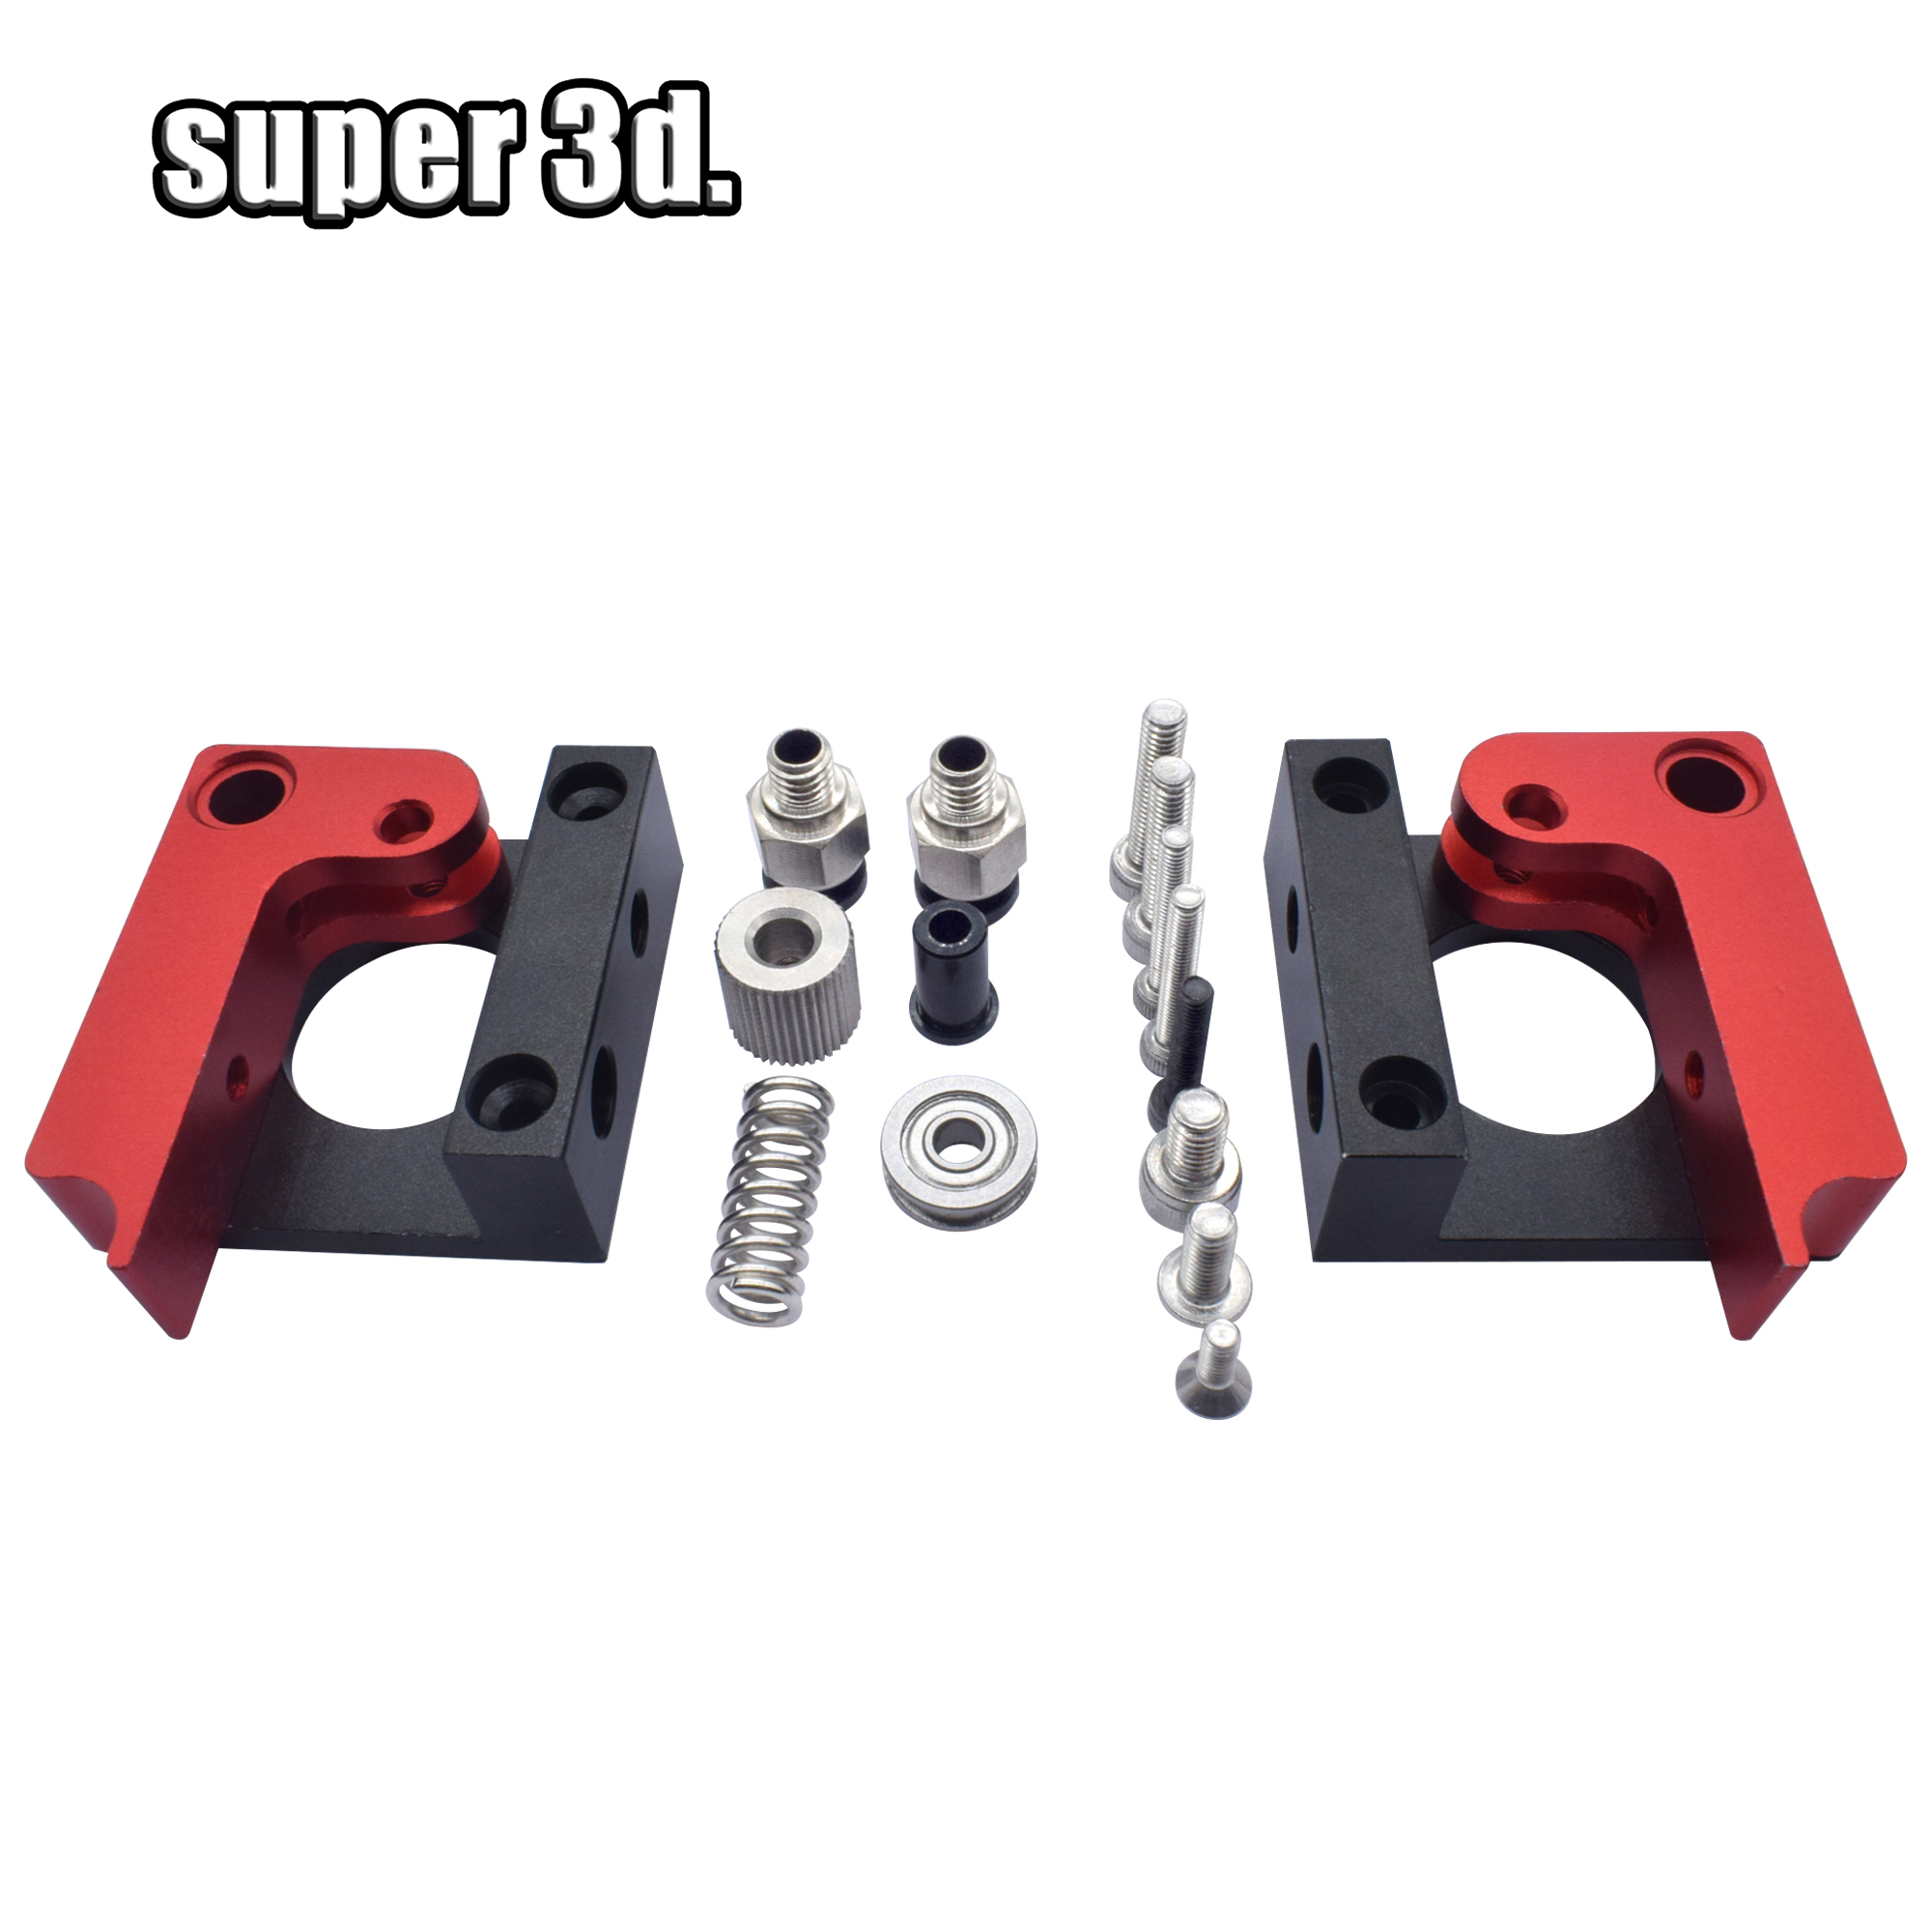 Improved Version MK8 All-metal Remote Extruder Feeder Kit 1.75mm (Right /Left ) Aluminum Alloy Block 3D Printer DIY Accessories